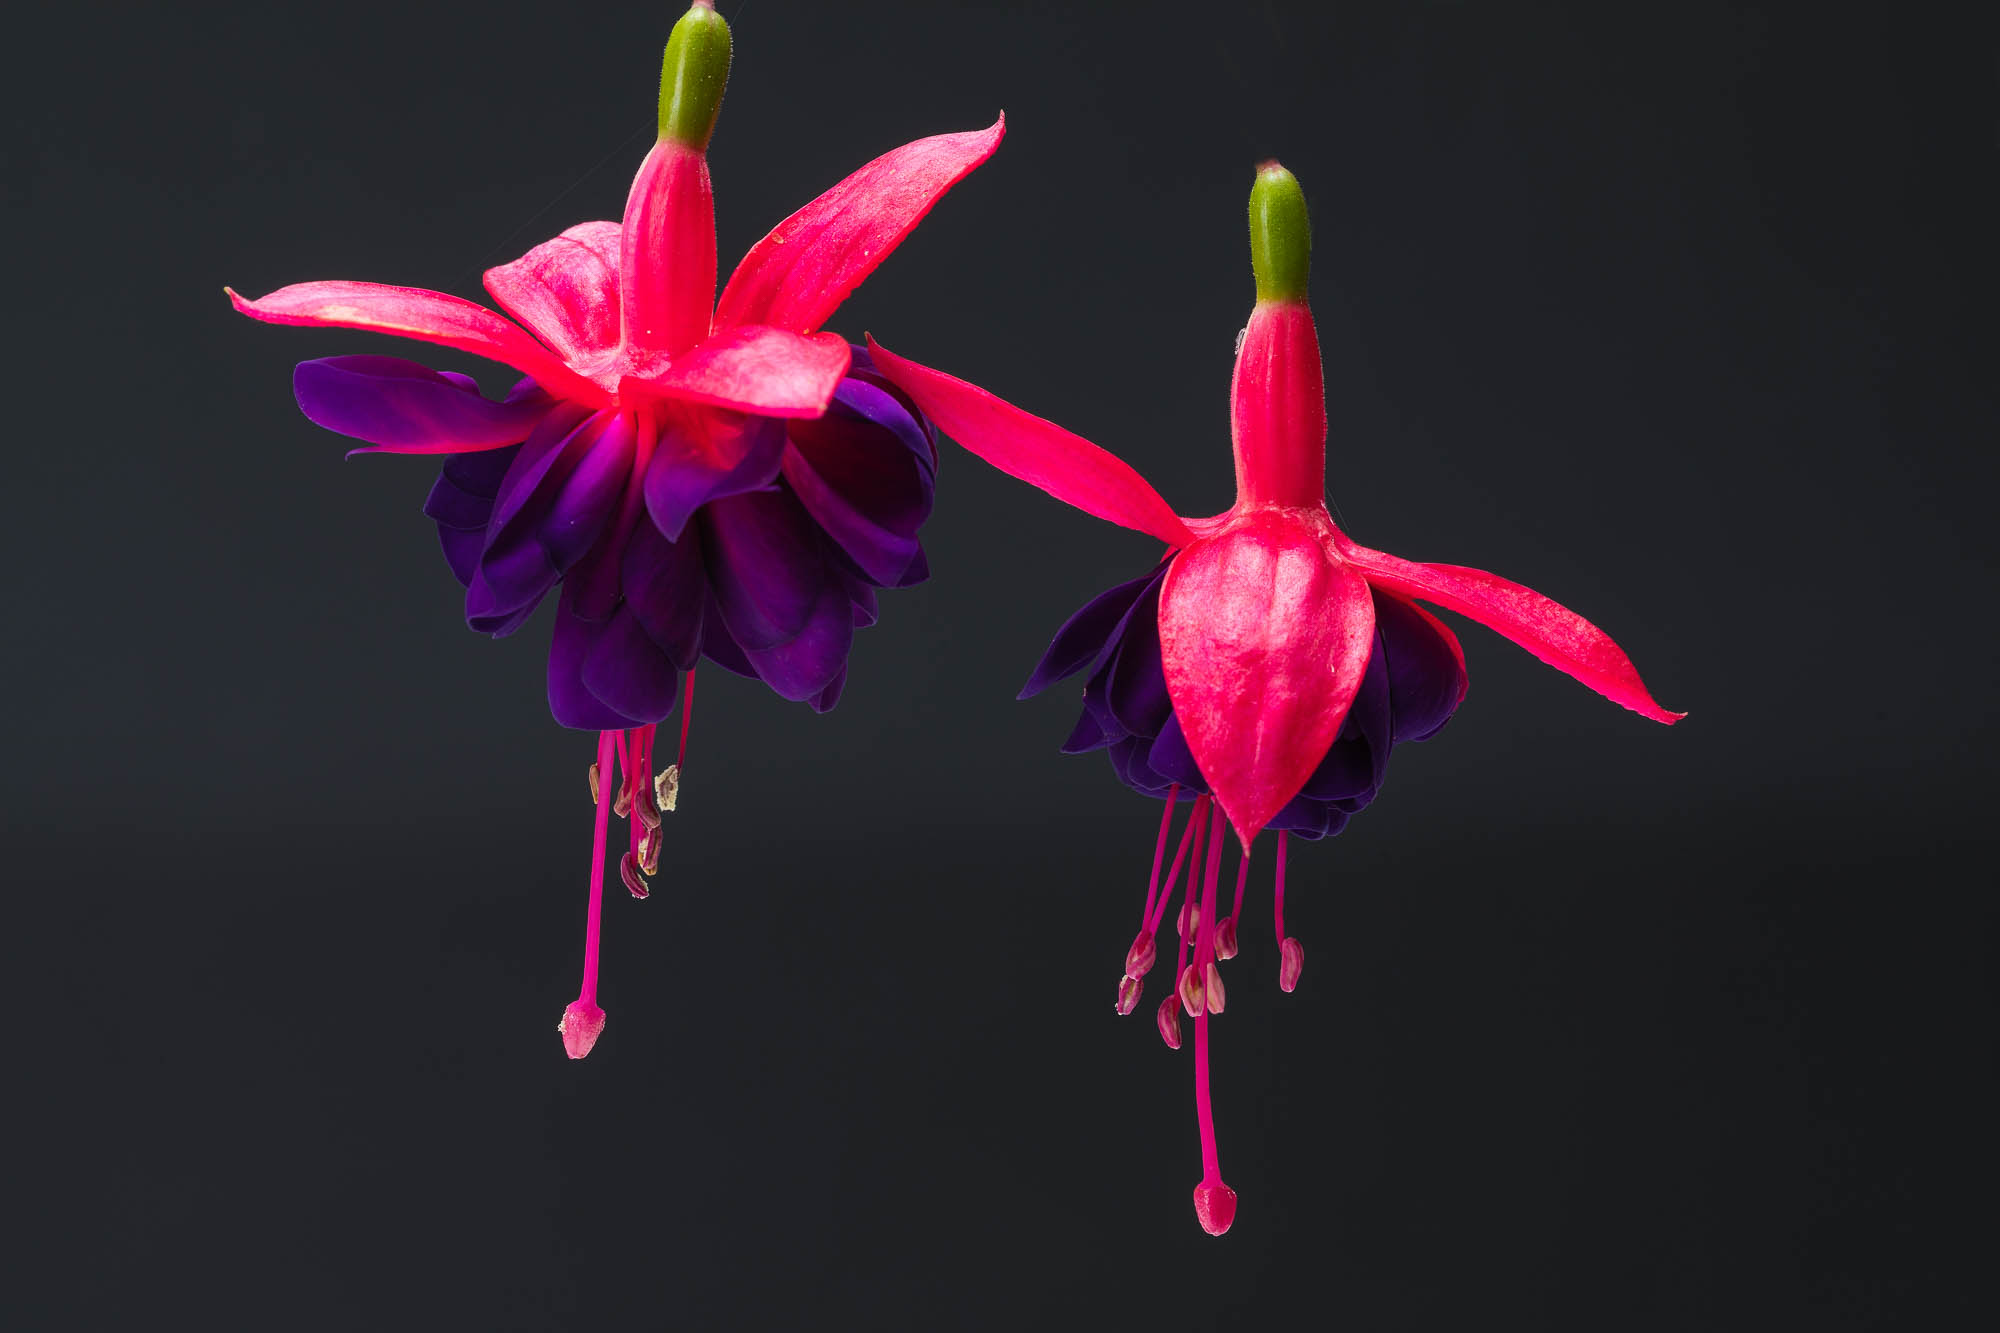 fine art image of fuchsia playfully suggesting a resemblance to ballerinas